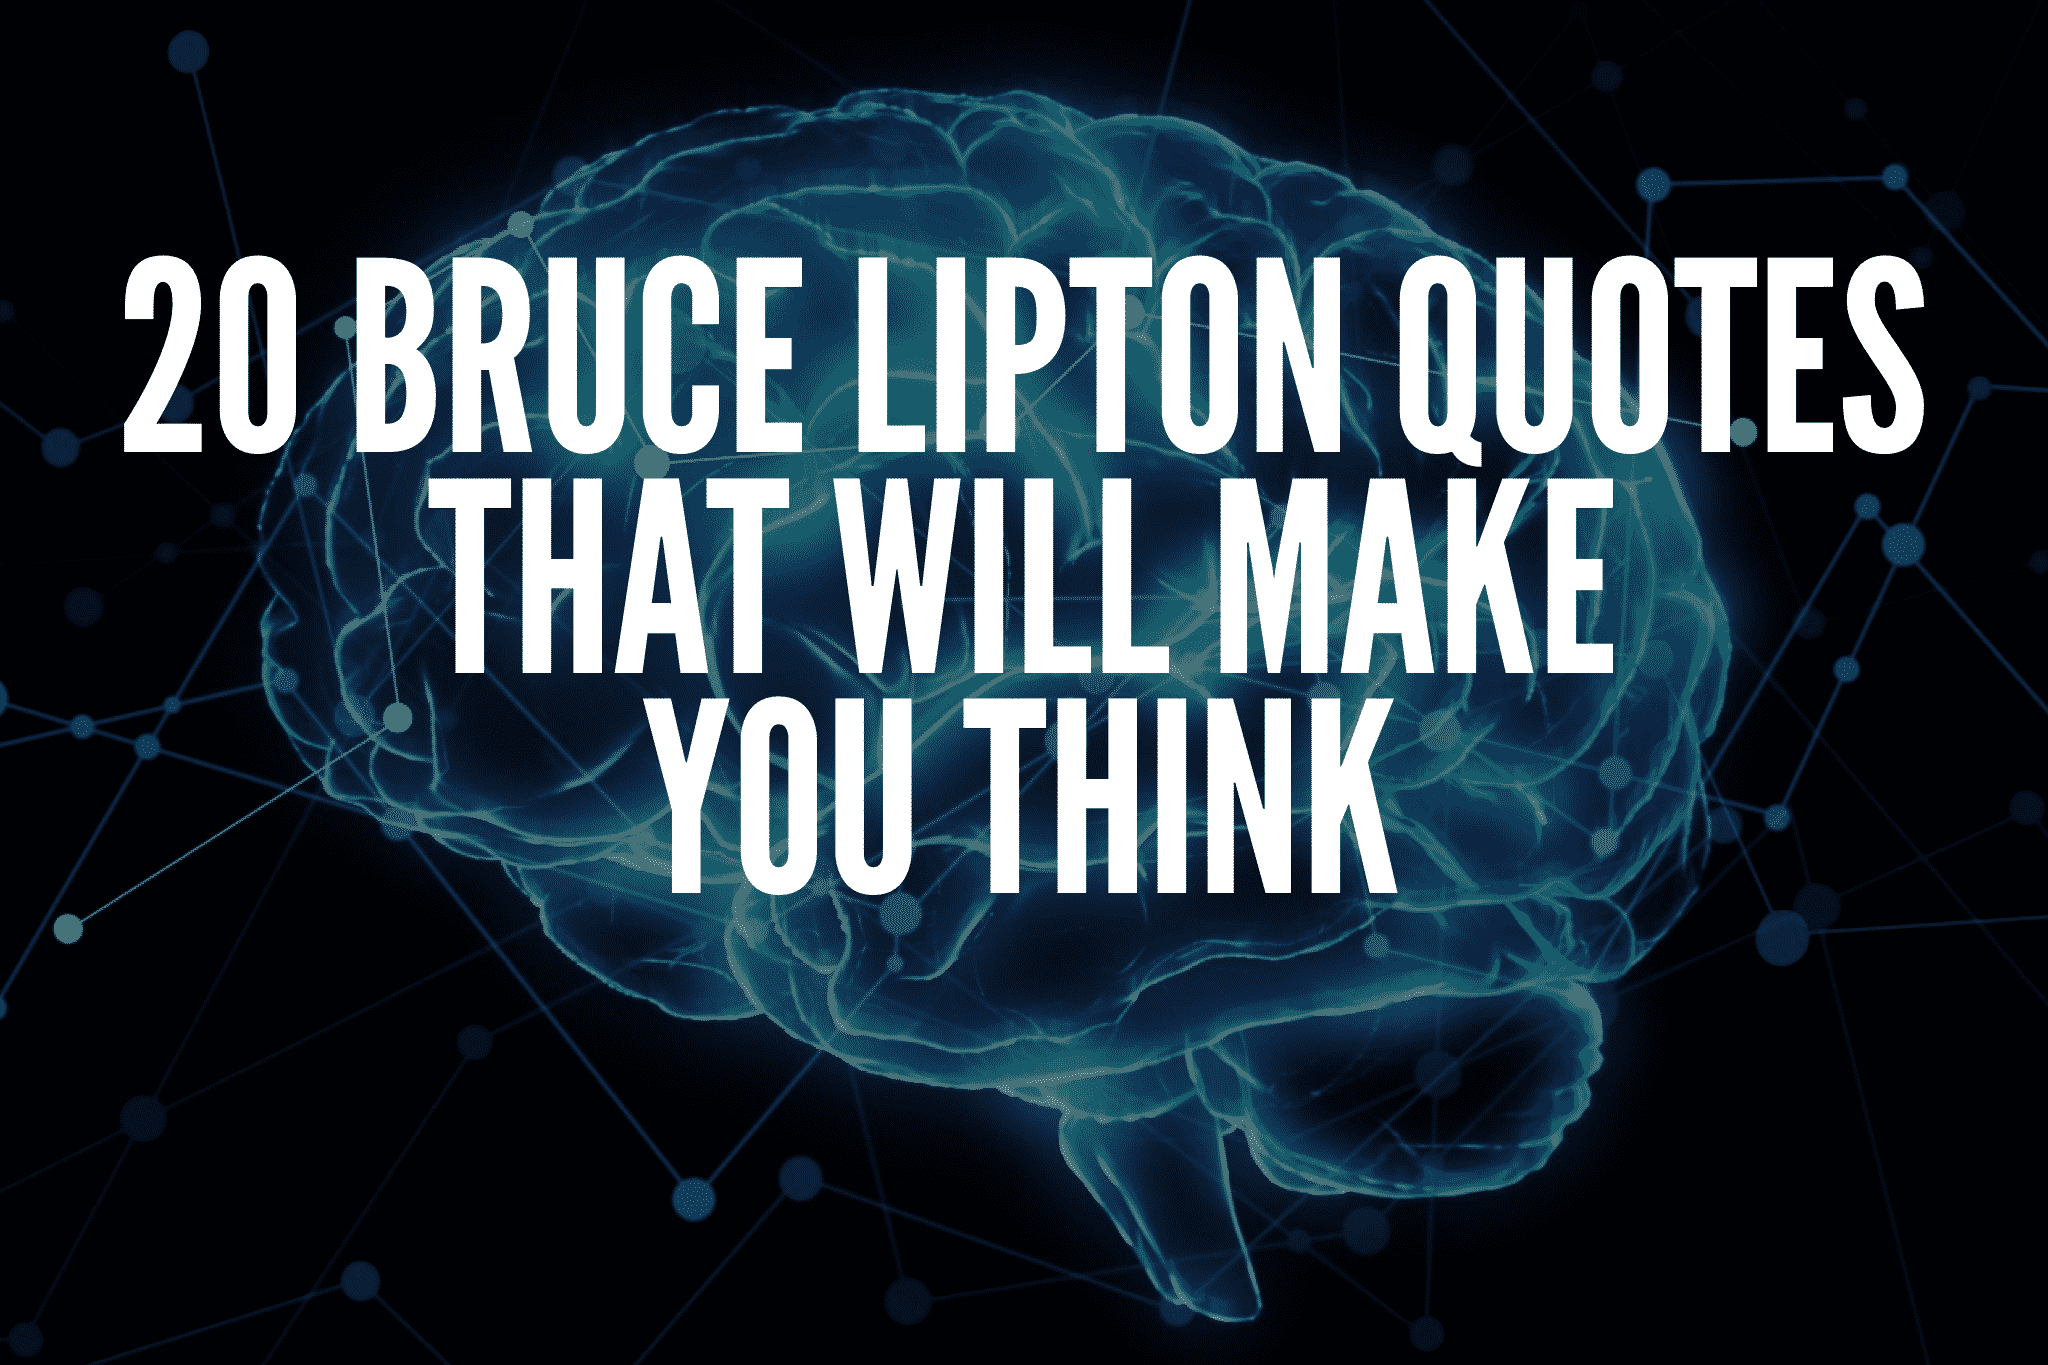 20 Bruce Lipton Quotes That Will Make You Think